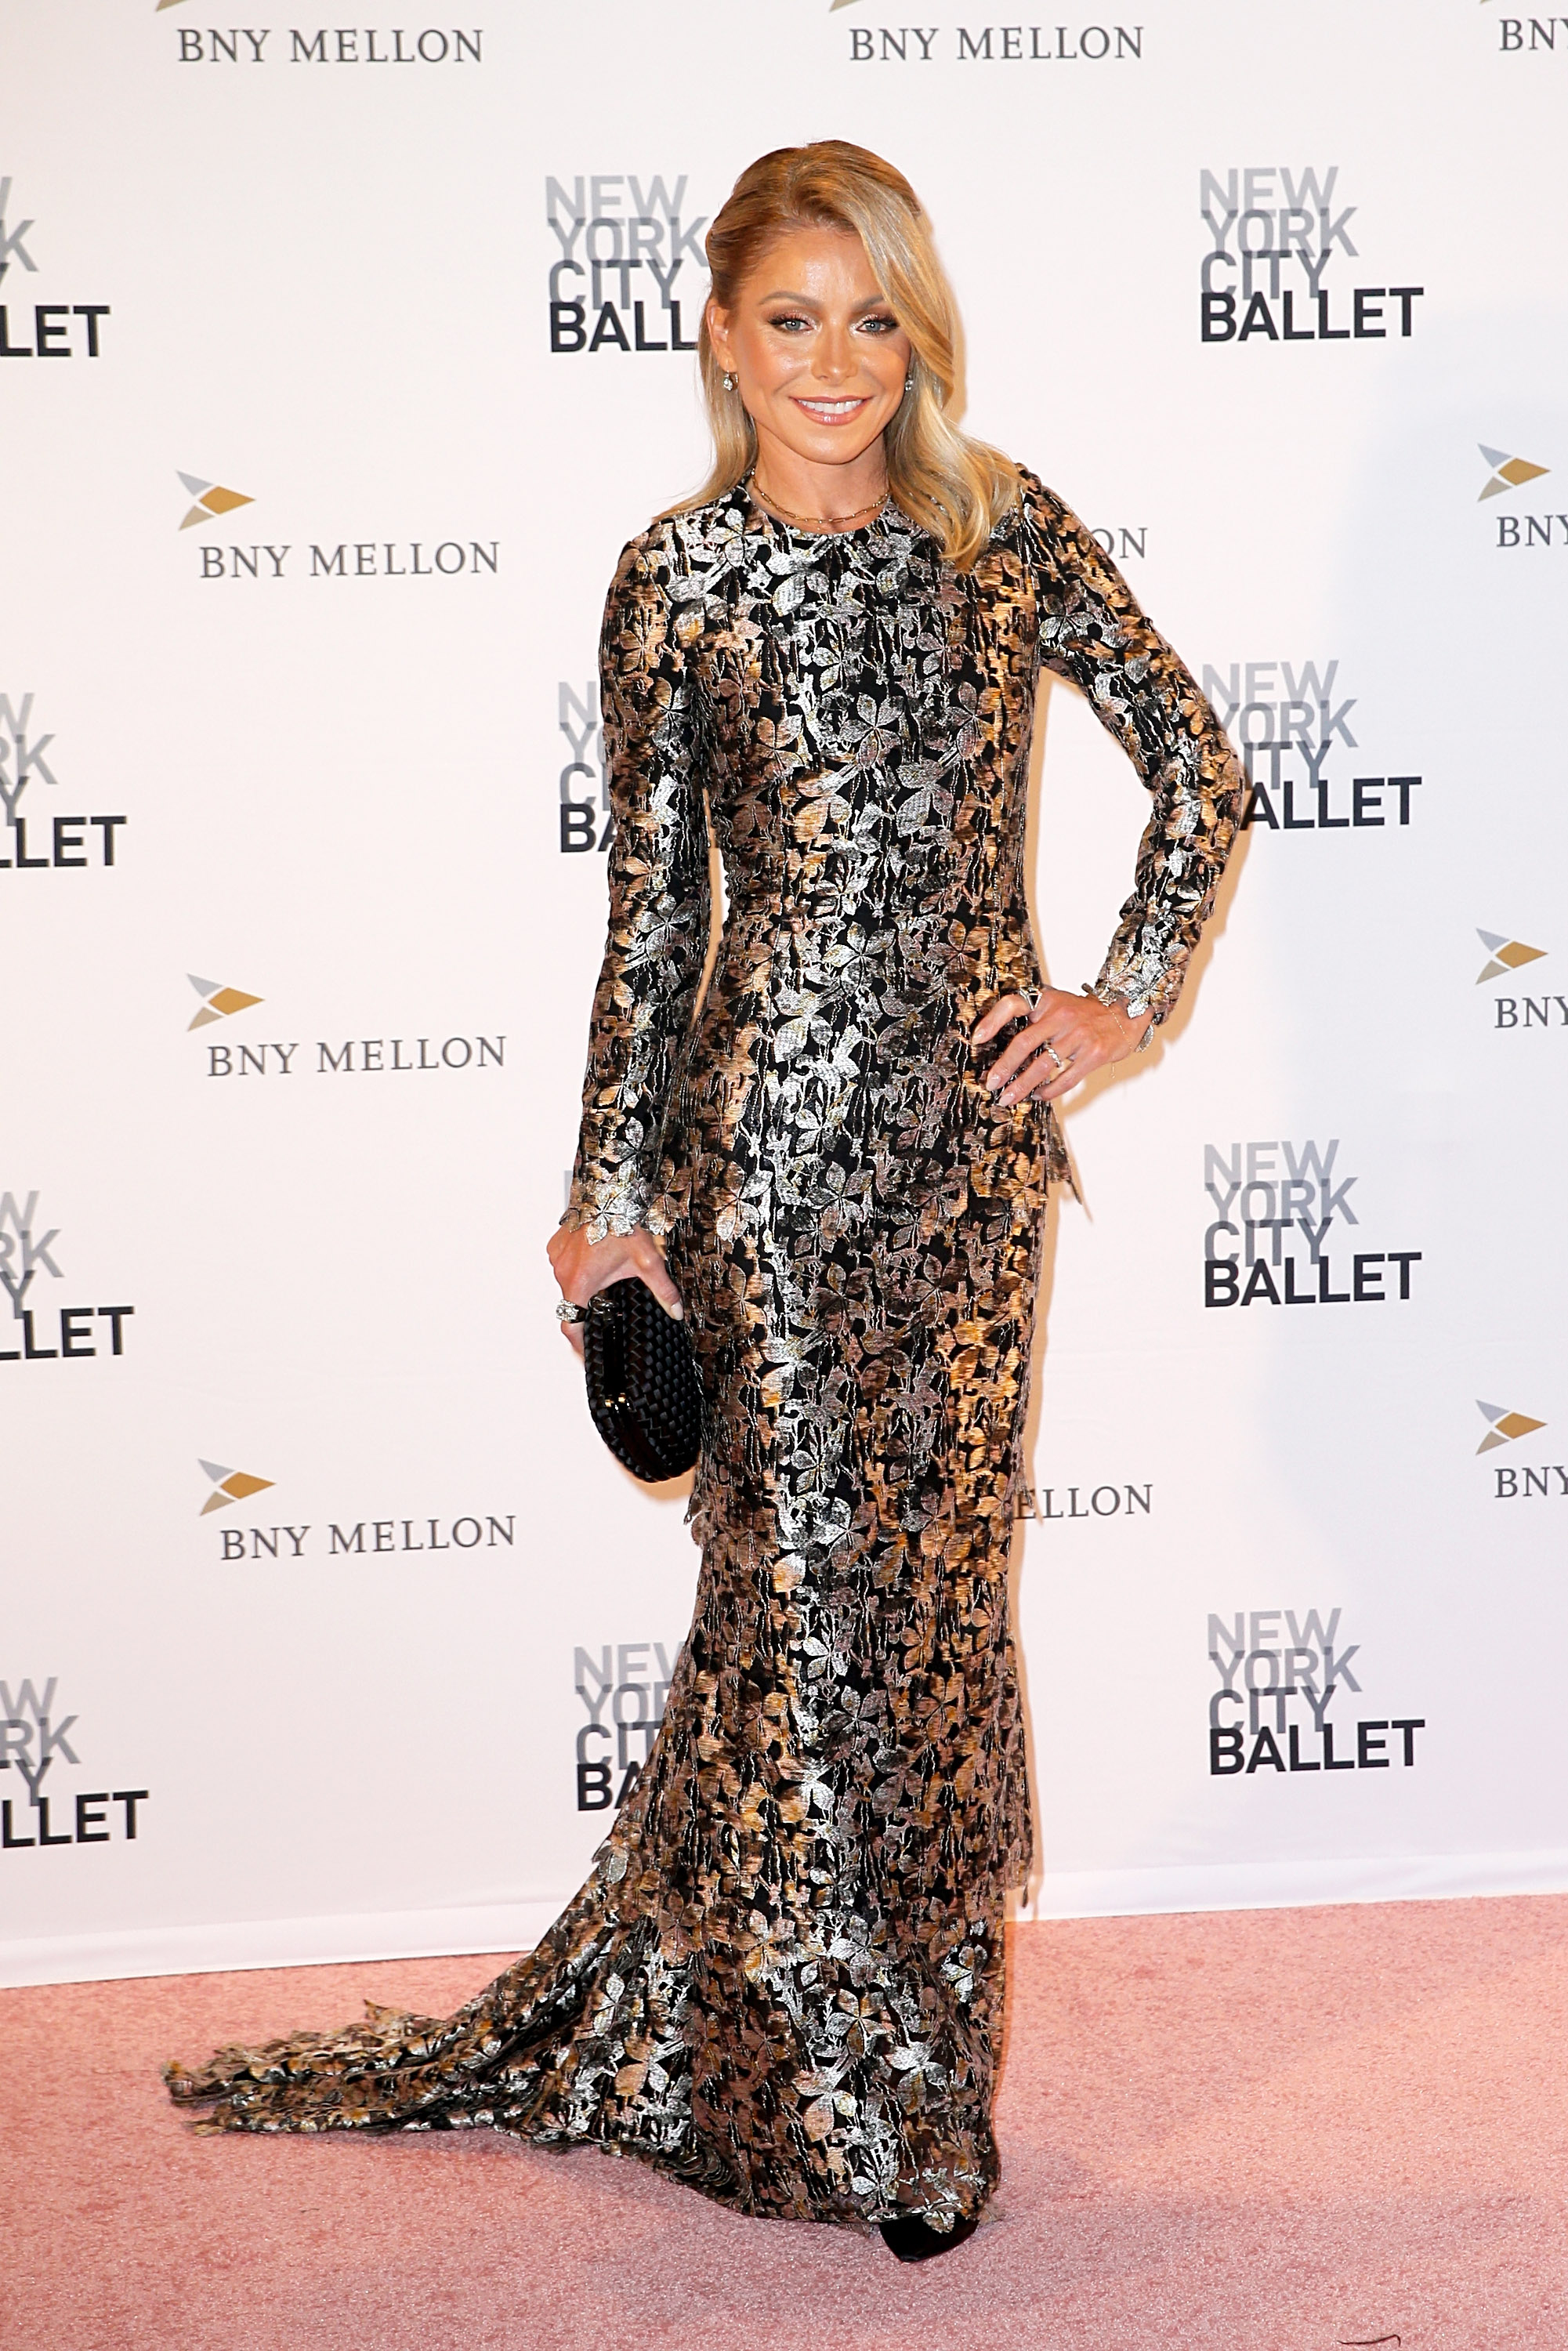 NEW YORK, NY - SEPTEMBER 27: Kelly Ripa attends the New York City Ballet 2018 Fall Fashion Gala at David H. Koch Theater at Lincoln Center on September 27, 2018 in New York City. (Photo by Dominik Bindl/Getty Images)